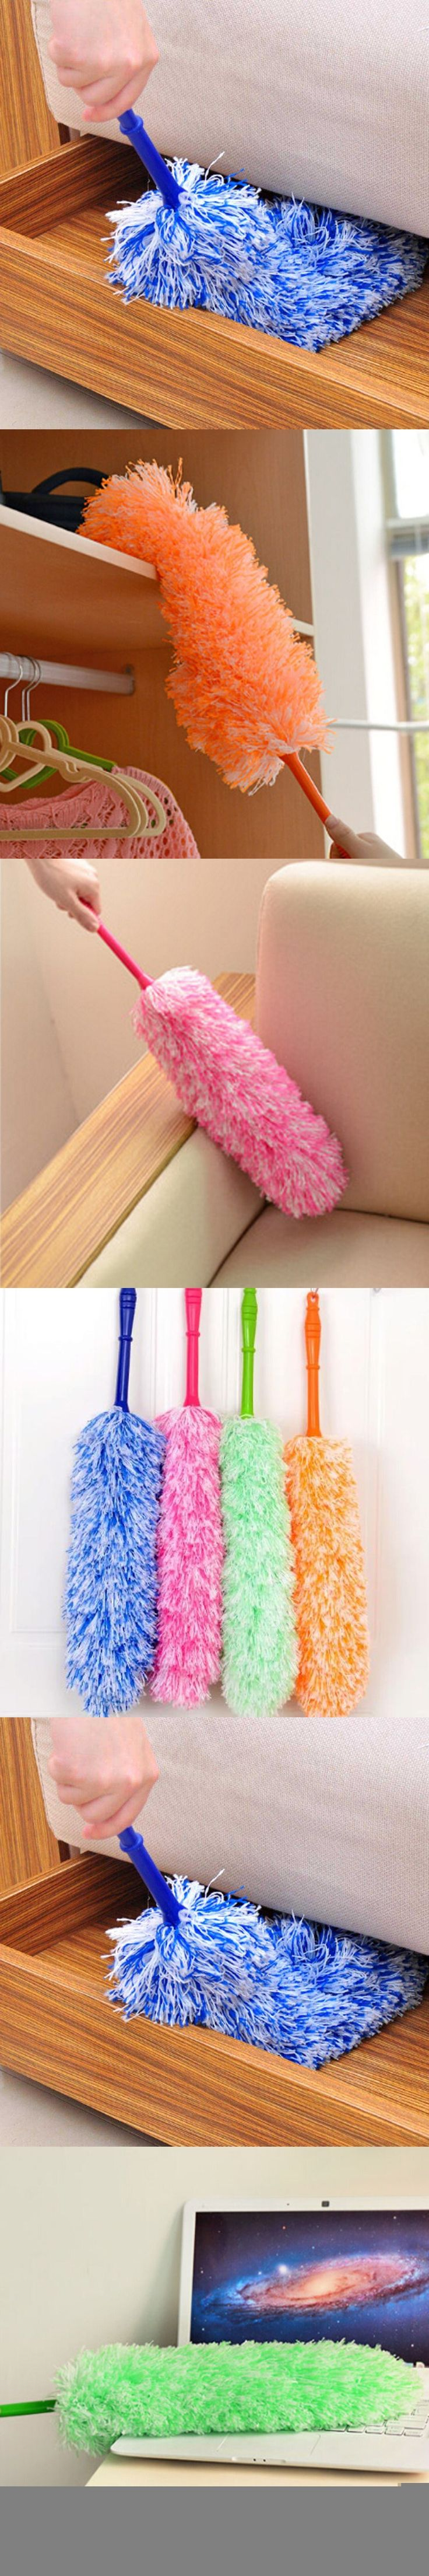 New  Soft  Microfiber cleaning dusters ultrafine fiber household cleaning car Dust duster feather brush